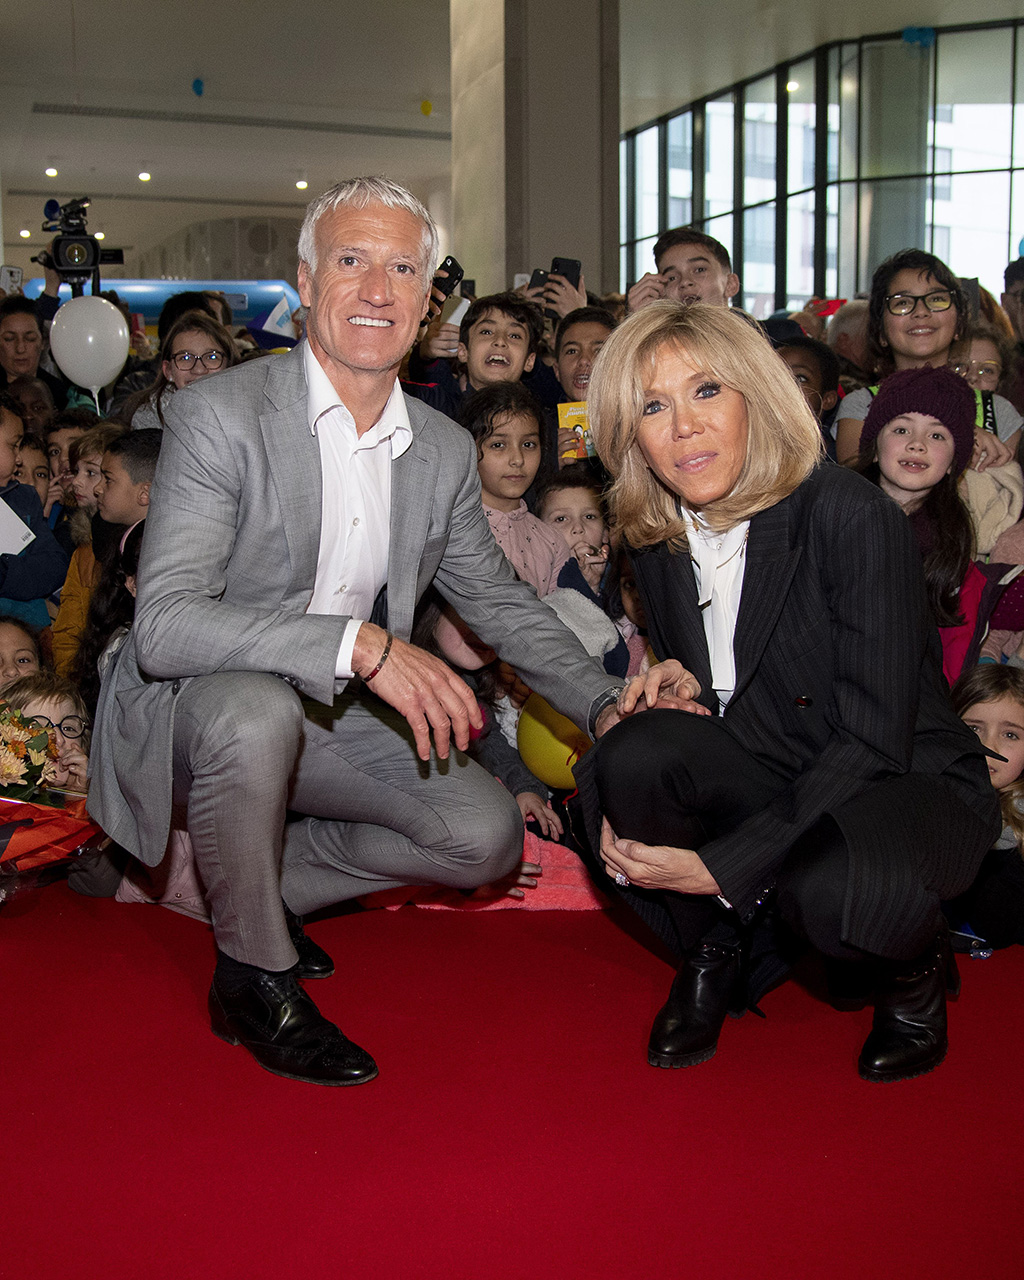 """brigitte macron, black boots, pantsuit, white blouse, French president's wife Brigitte Macron and Didier Deschamps (France former head coach of the French national football team) during the launch of the 31st edition of the """"Pieces Jaunes"""". 08 Jan 2020 Pictured: Brigitte Macron & Didier Deschamps. Photo credit: KCS Presse / MEGA TheMegaAgency.com +1 888 505 6342 (Mega Agency TagID: MEGA581305_002.jpg) [Photo via Mega Agency]French president's wife Brigitte Macron and Didier Deschamps (France former head coach of the French national football team) during the launch of the 31st edition of the """"Pieces Jaunes"""". 08 Jan 2020 Pictured: Brigitte Macron & Didier Deschamps. Photo credit: KCS Presse / MEGA TheMegaAgency.com +1 888 505 6342 (Mega Agency TagID: MEGA581305_021.jpg) [Photo via Mega Agency]"""